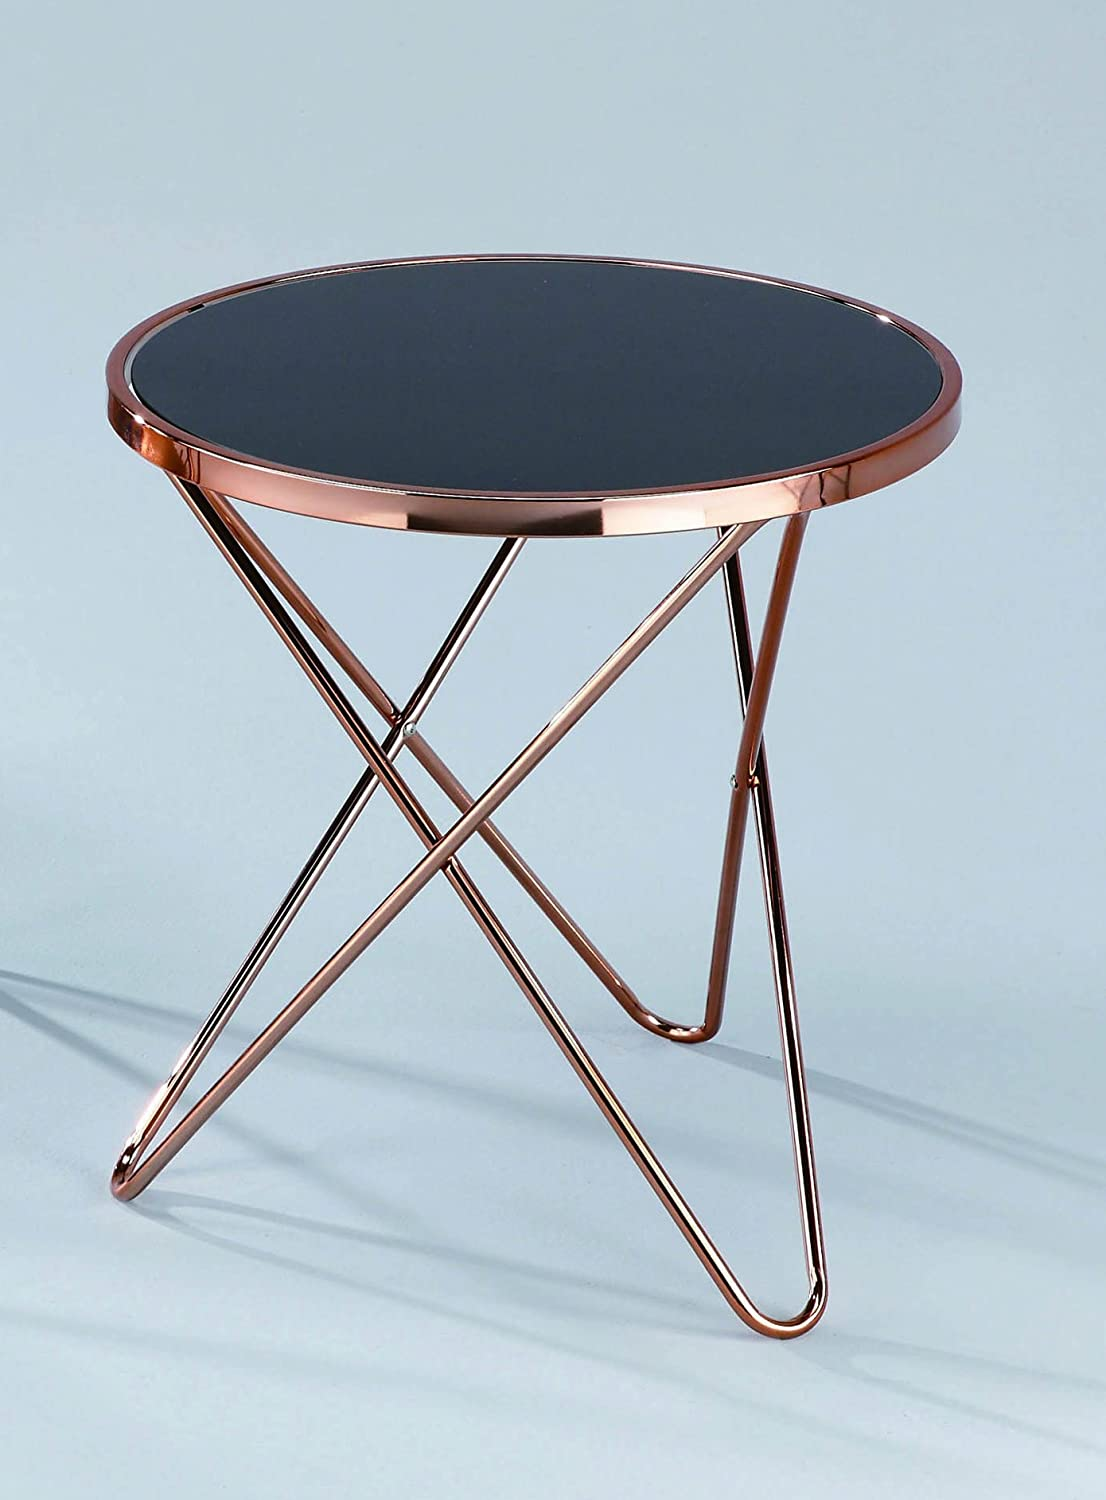 ASPECT Porto Round Coffee Table, Copper/Black, 85 Dia X 48 Cm:  Amazon.co.uk: Kitchen U0026 Home